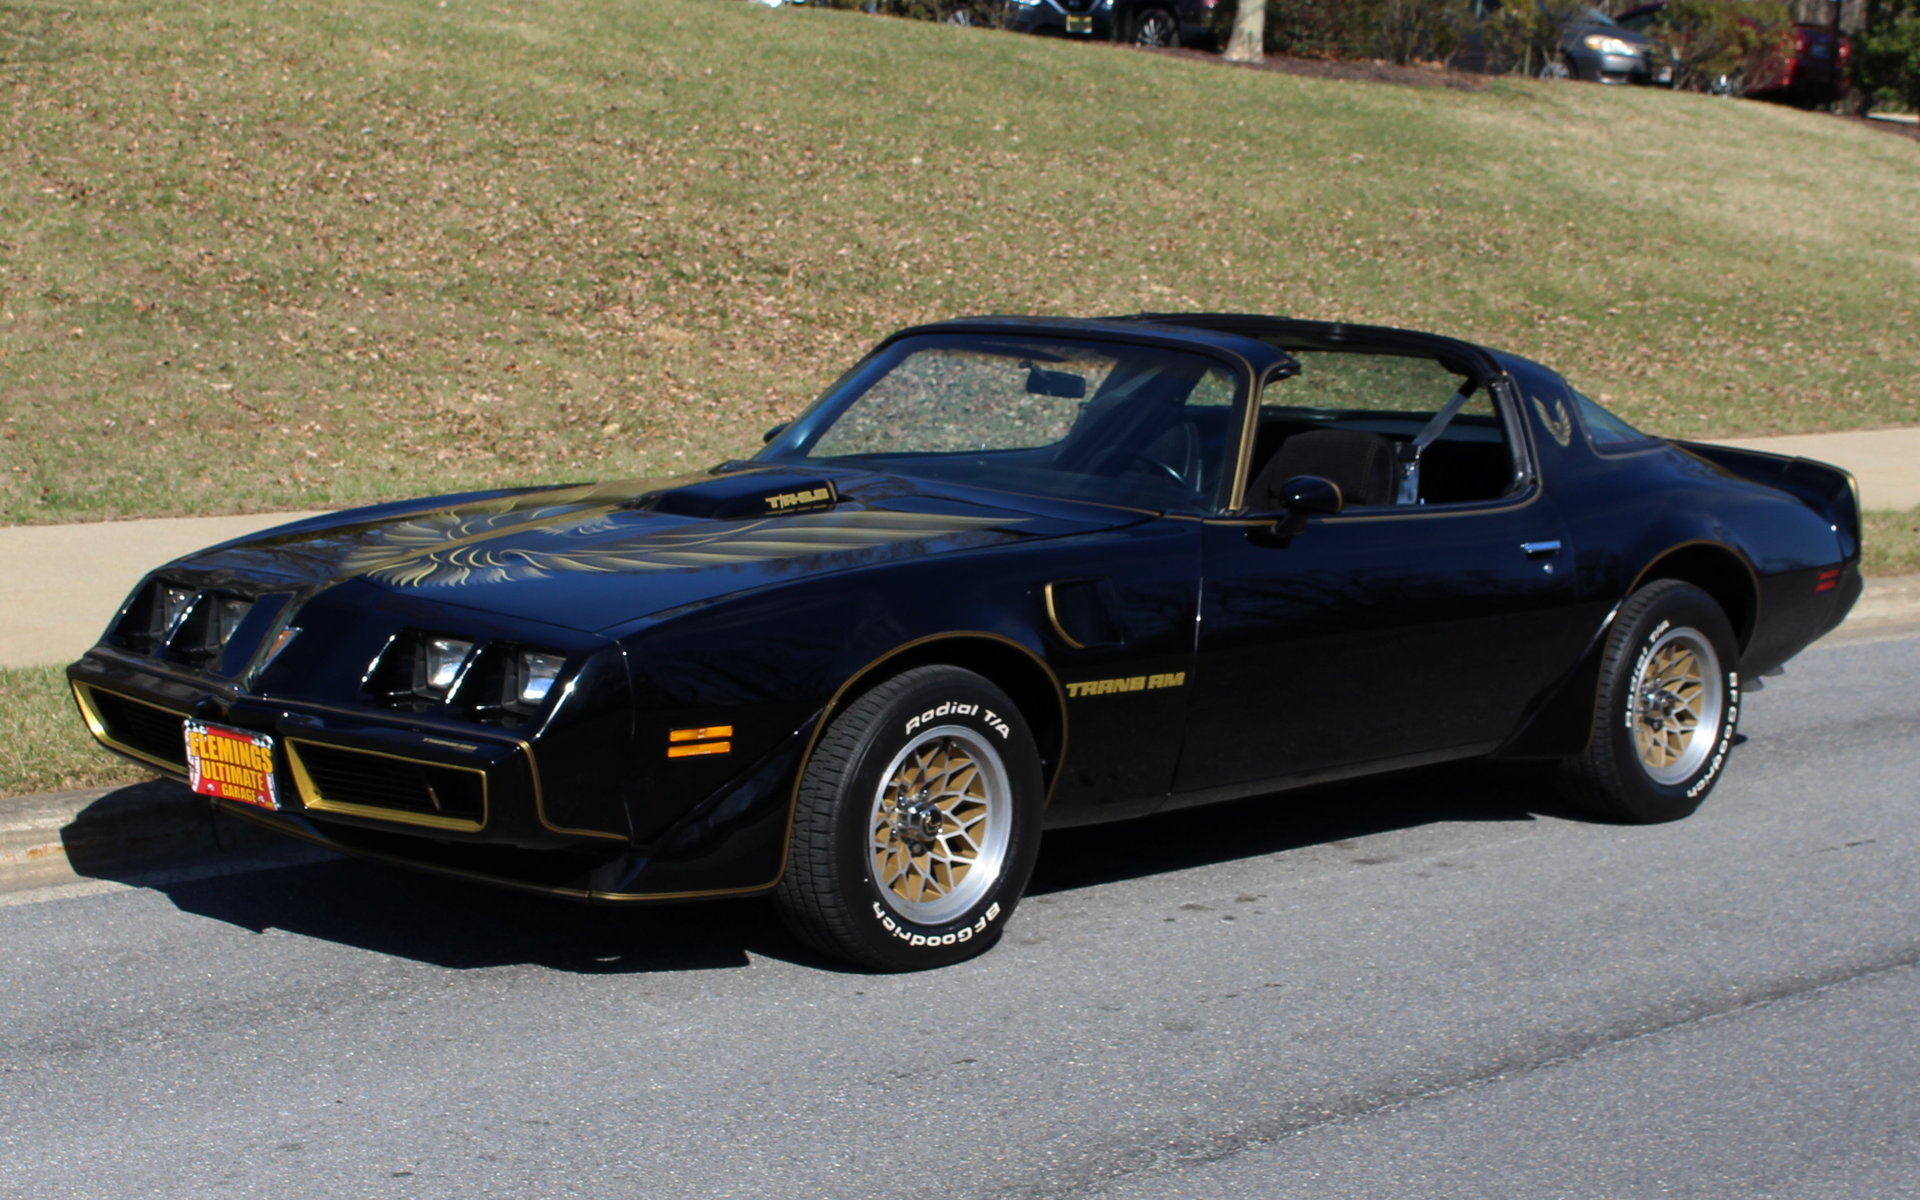 1979 pontiac trans am bandit for sale 77523 mcg. Black Bedroom Furniture Sets. Home Design Ideas